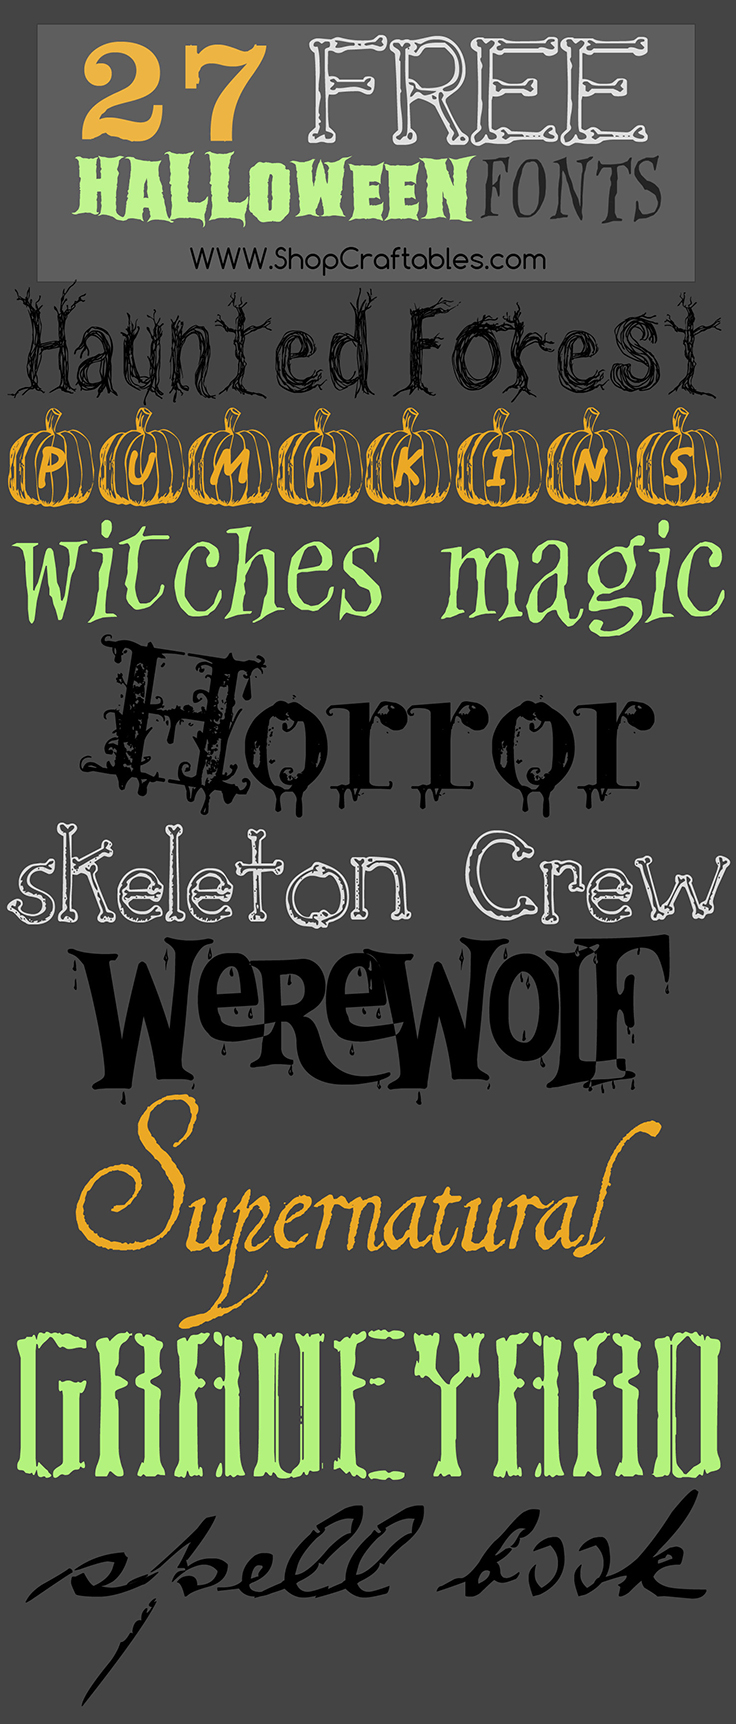 Free Halloween Fonts   Cricut and Silhouette   Craftables